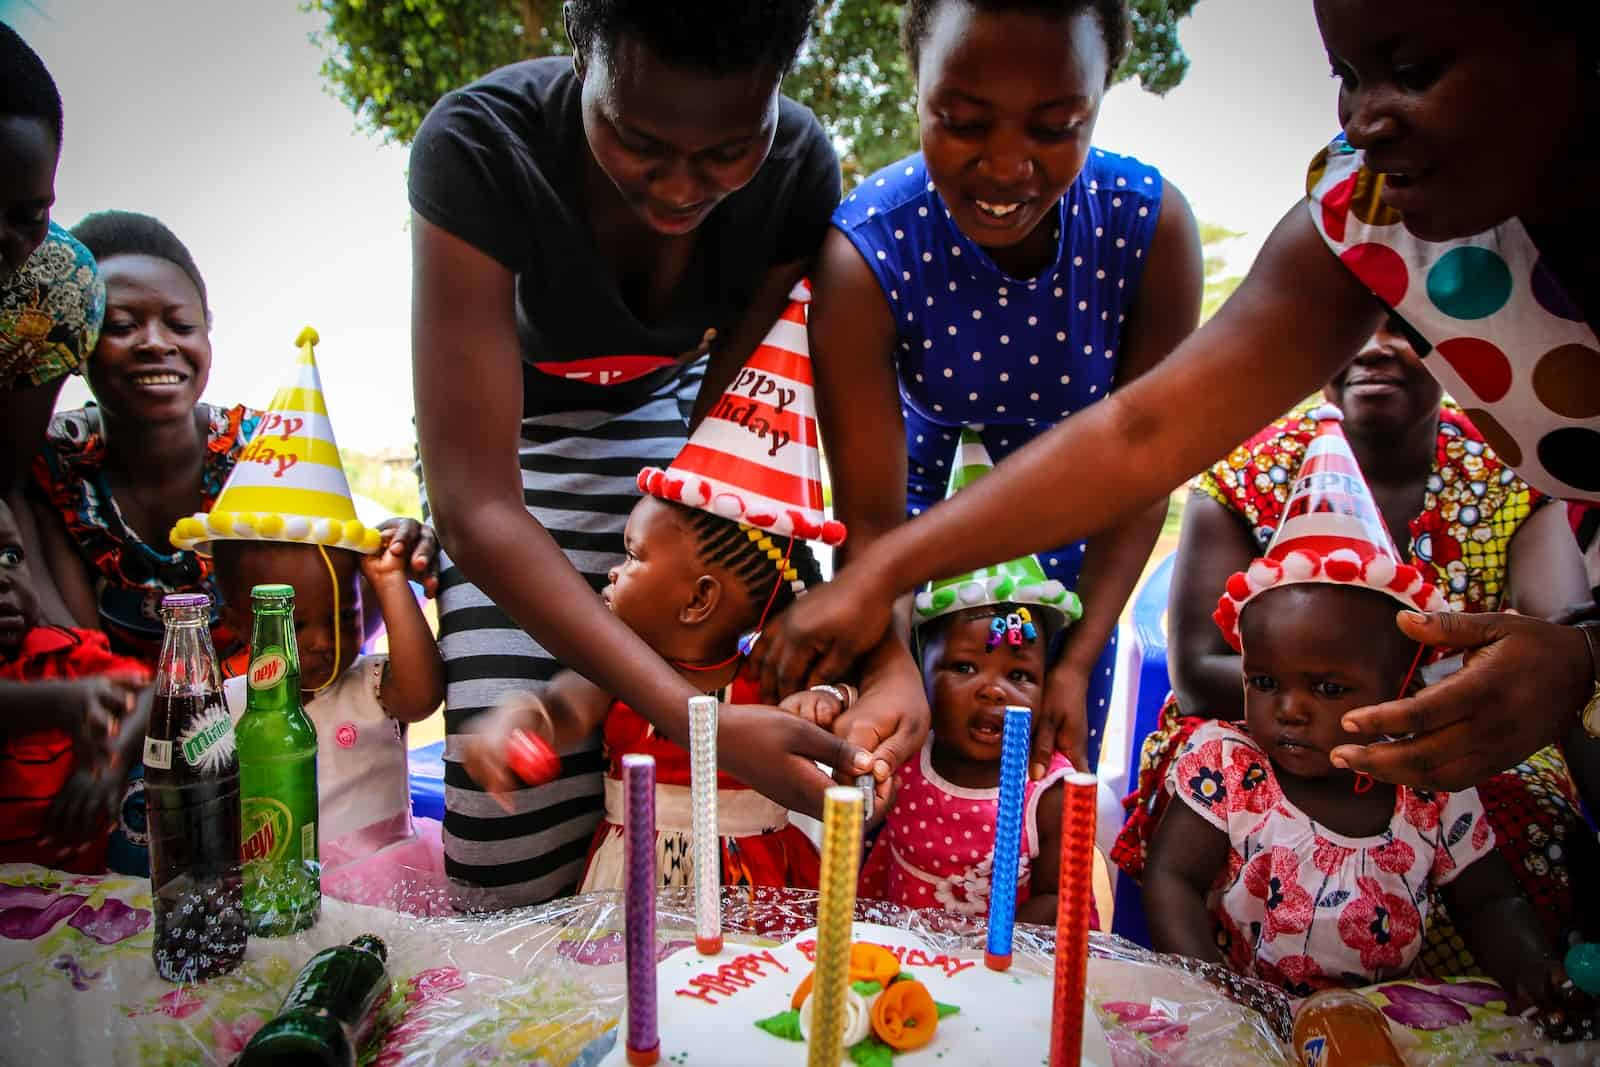 Three babies sit at a table with a cake in front of them to celebrate a birthday milestone. They are wearing party hats and women stand behind them, helping them.